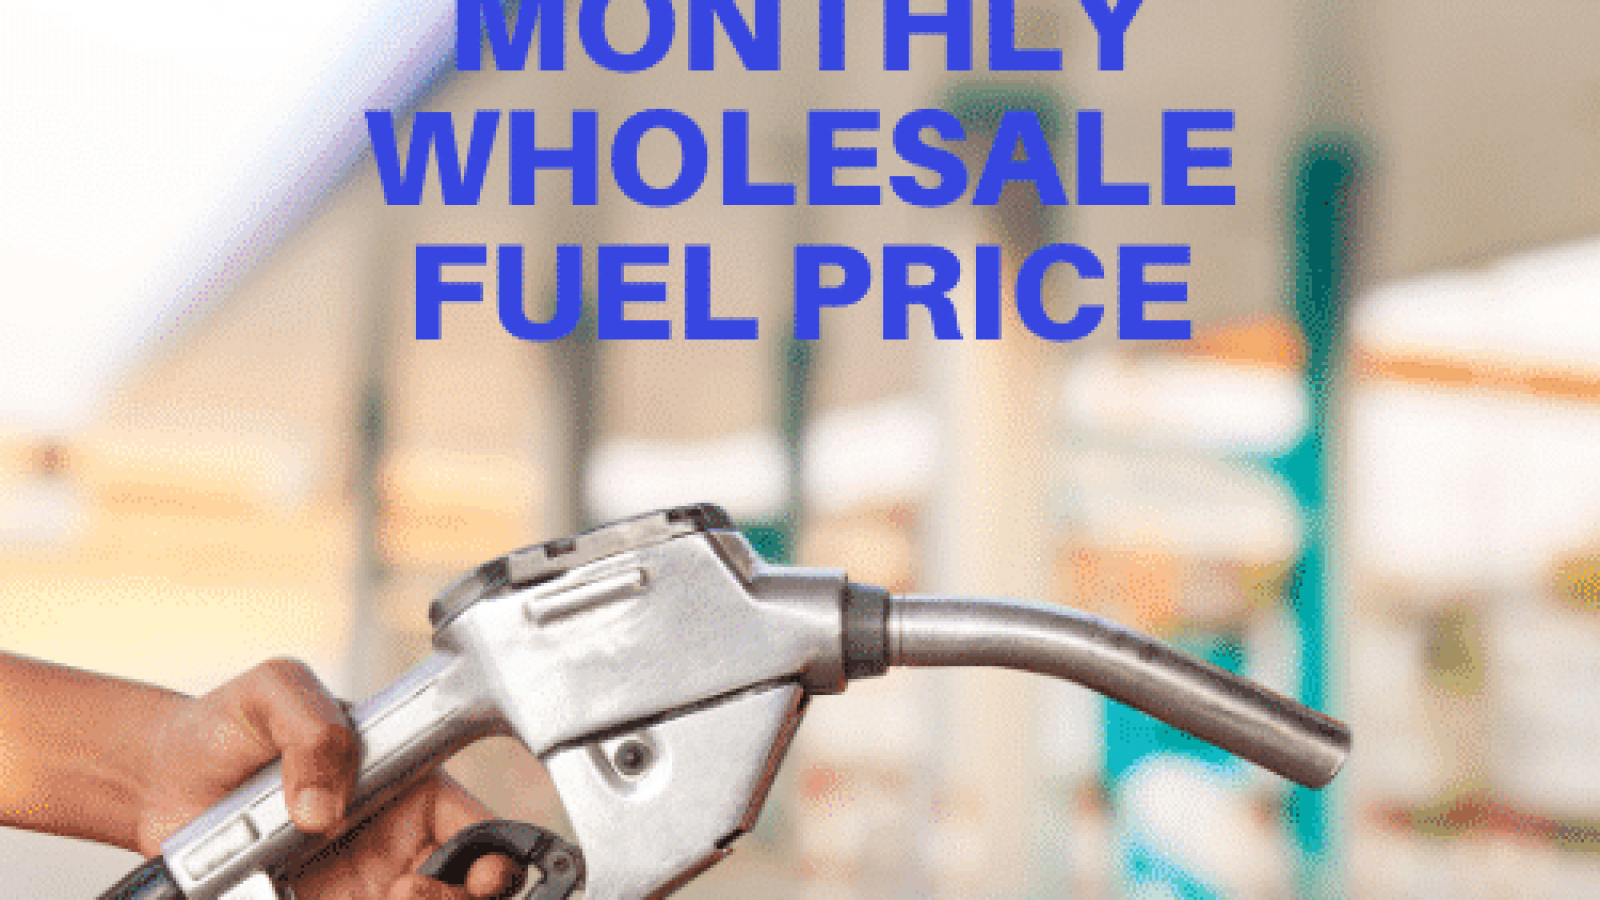 Monthly Fuel Wholesale Prices